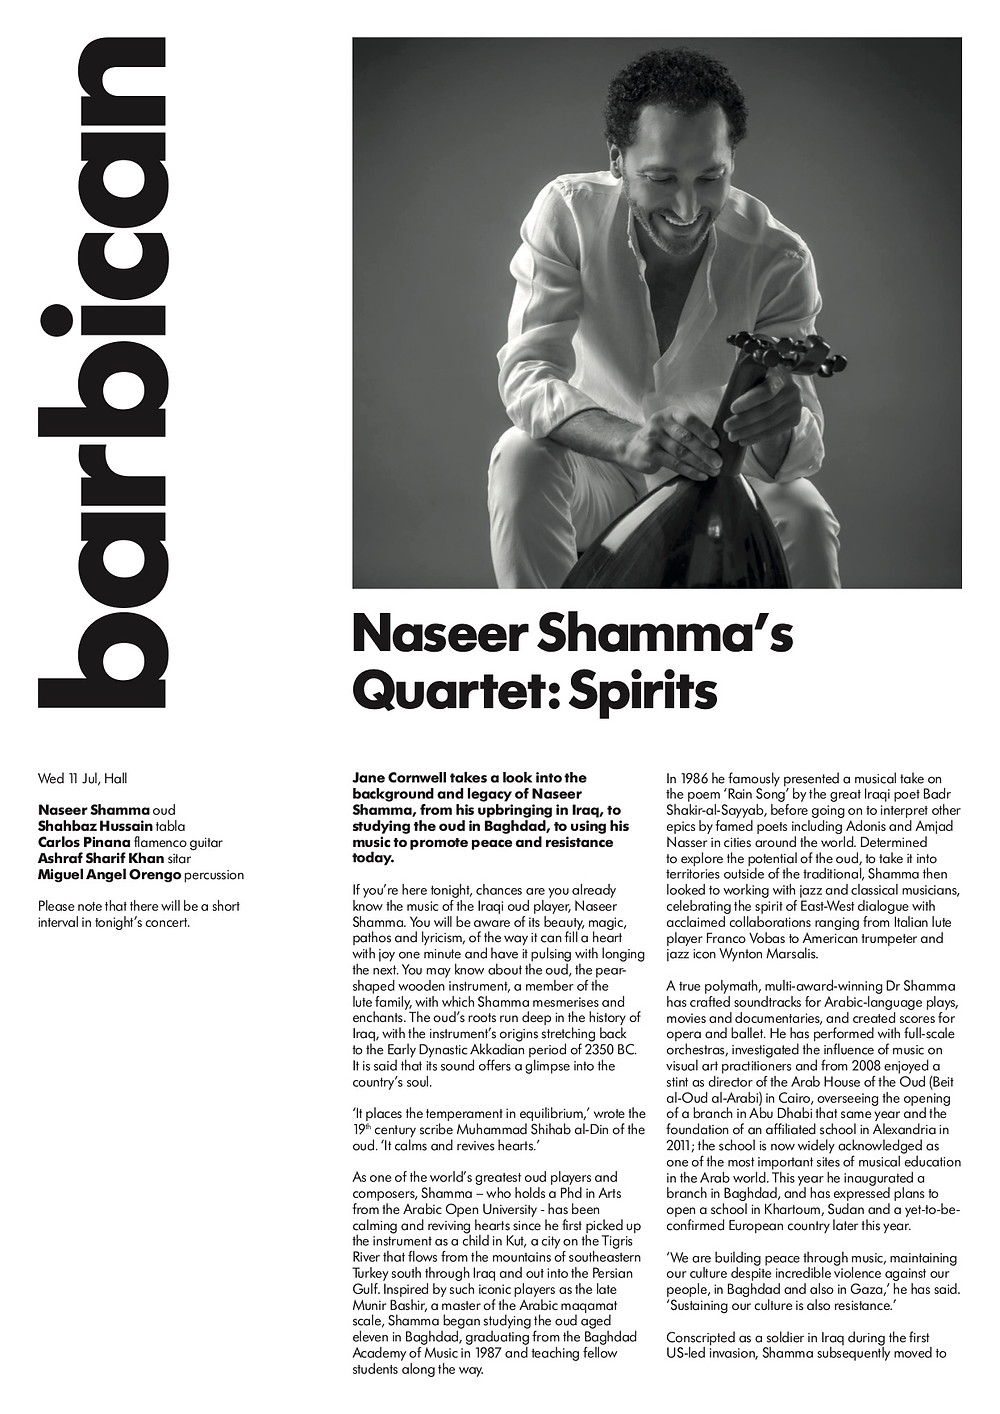 Program notes from Naseer Shamma's Spirits concert at the Barbican Centre in London, 11th July 2018